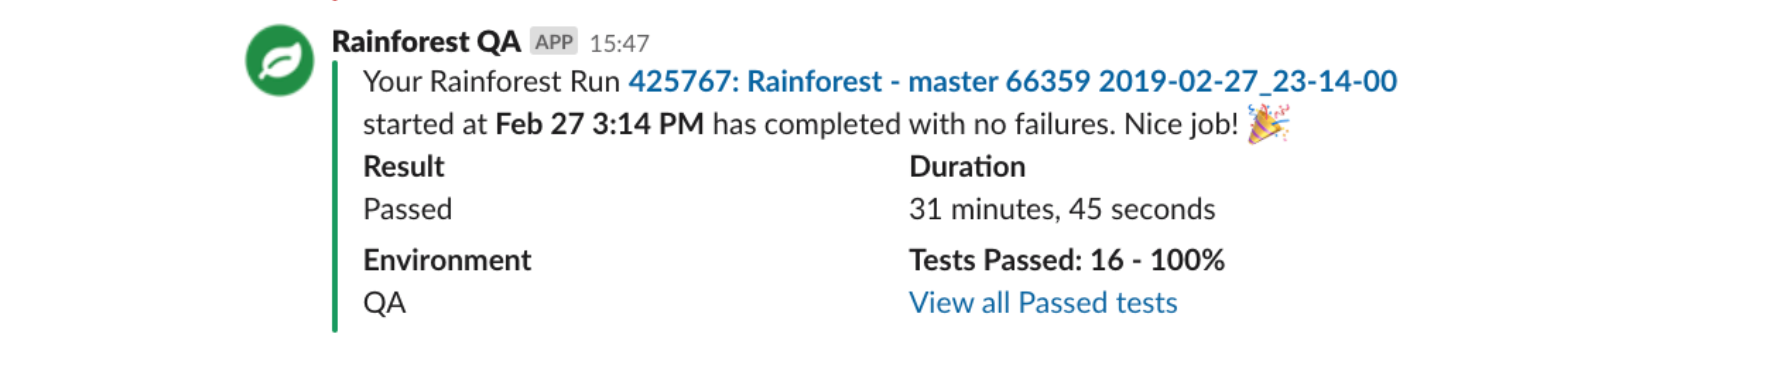 [Test Results Notification]